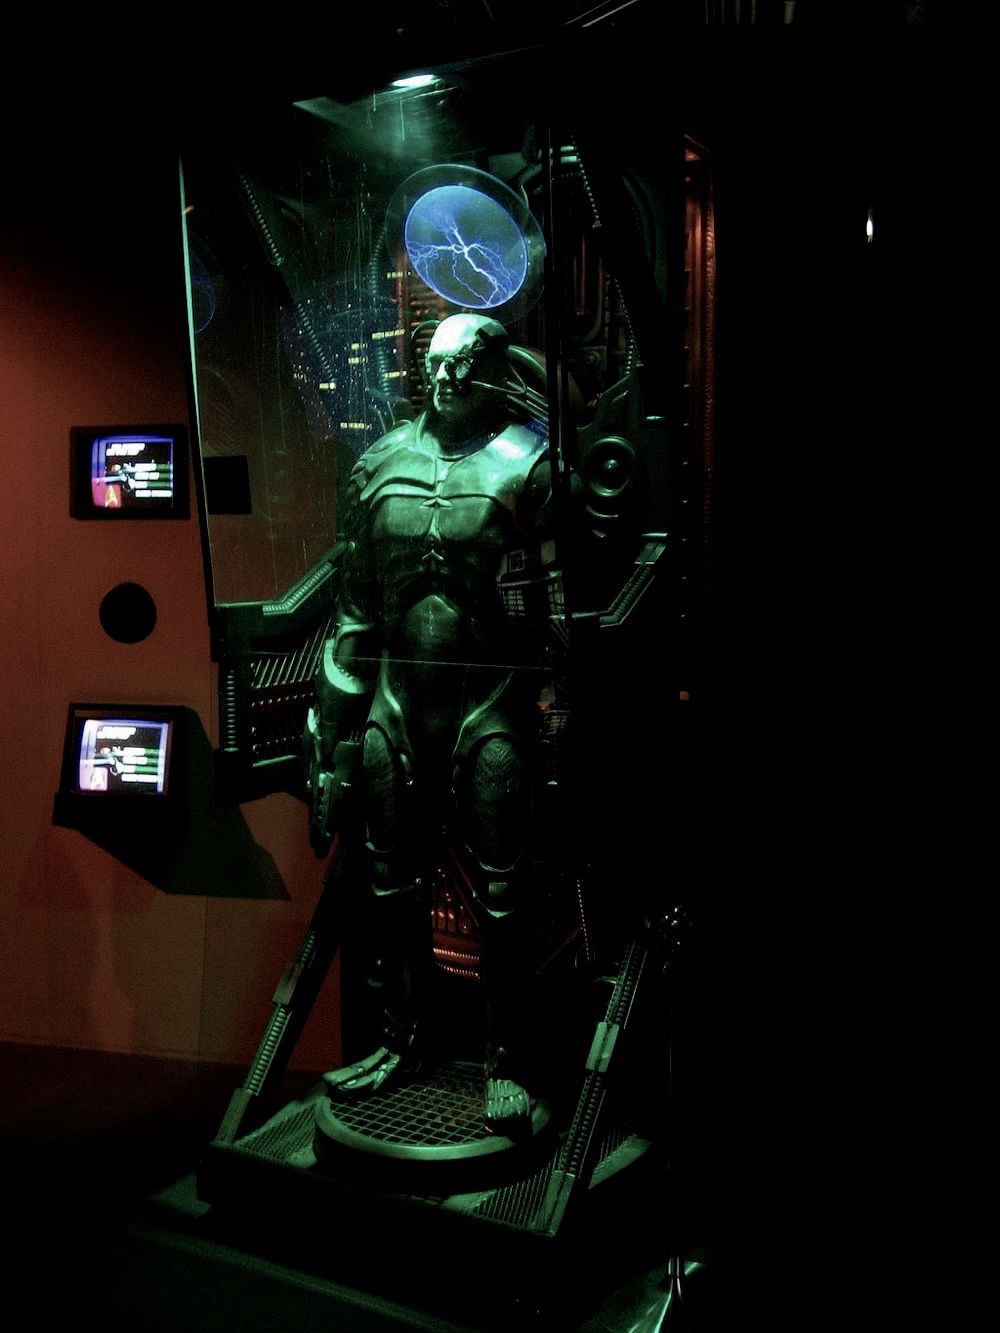 Capsule with the Star Trek character of a Borg, in a museum display